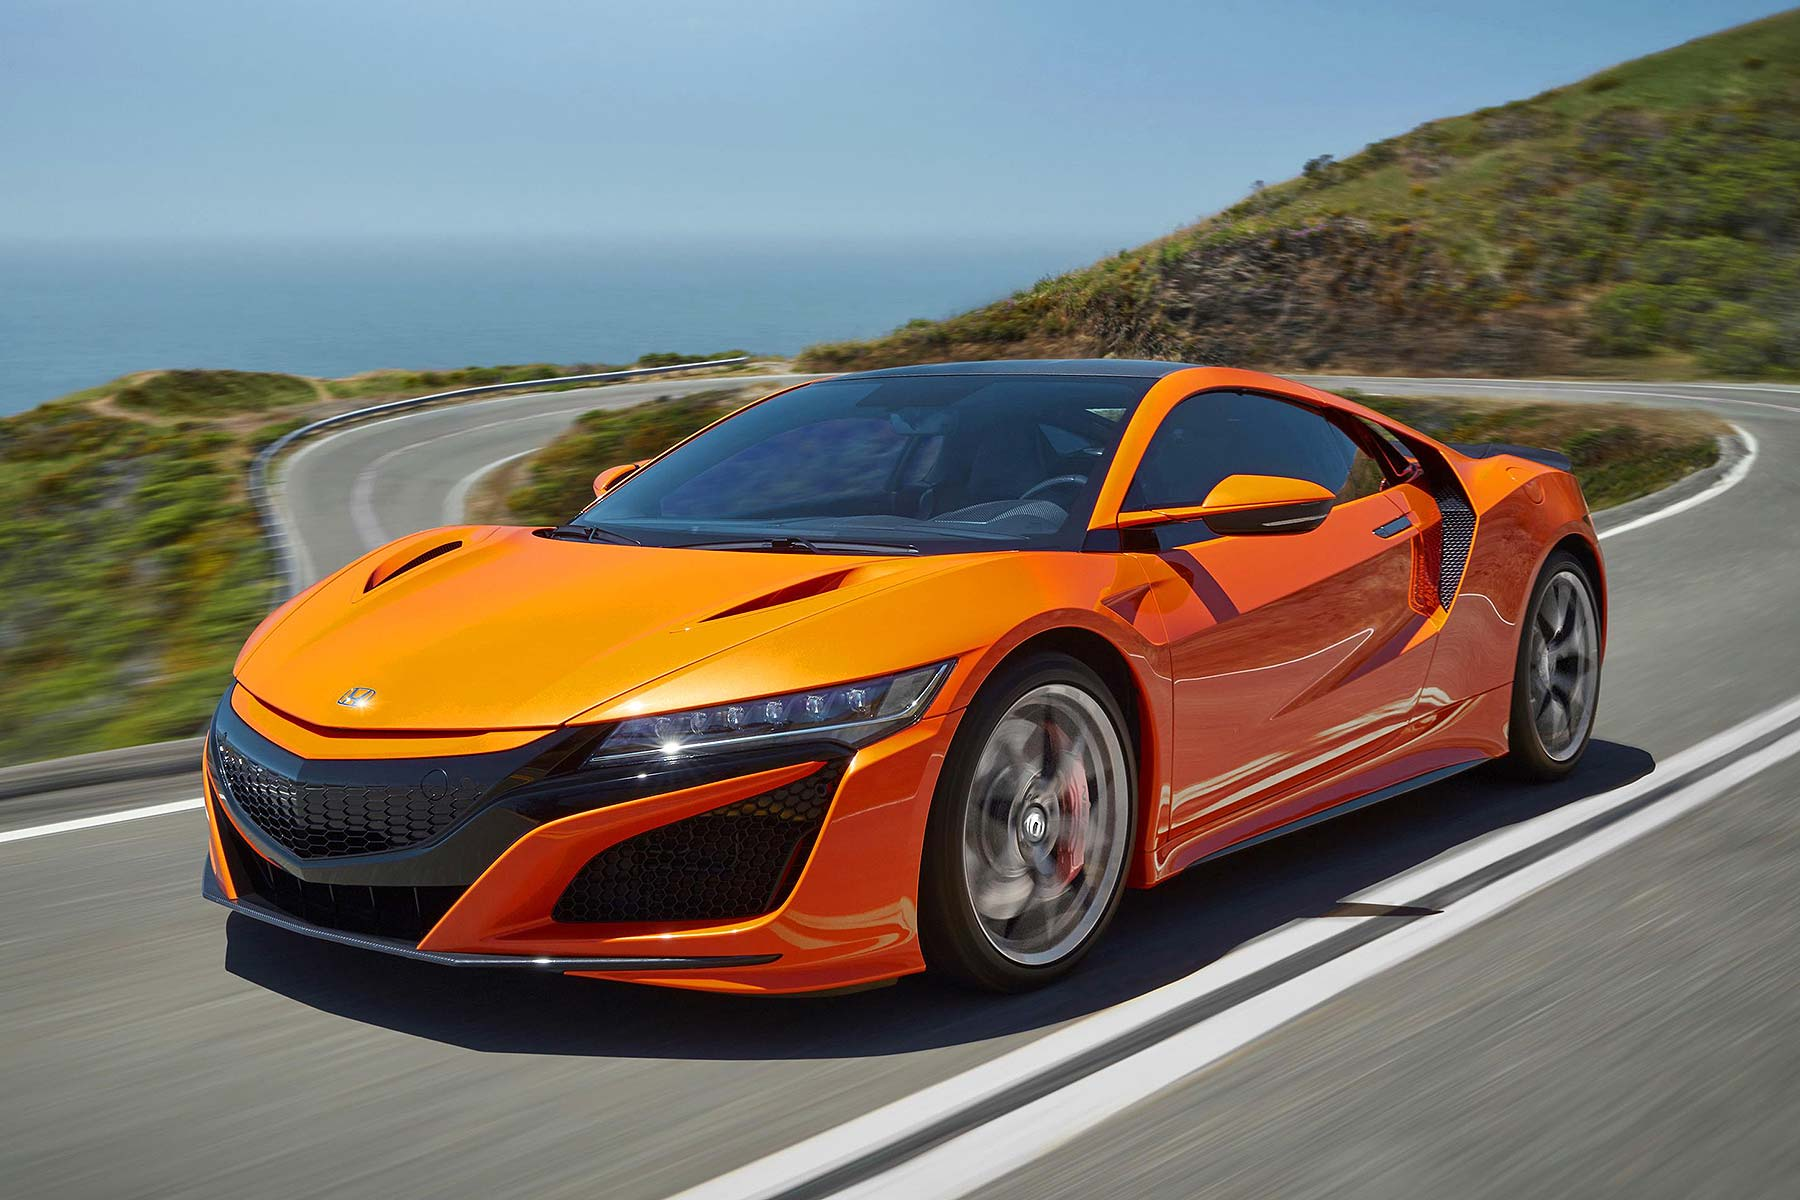 2019 Honda NSX Is Sharper To Drive, Greener AND More